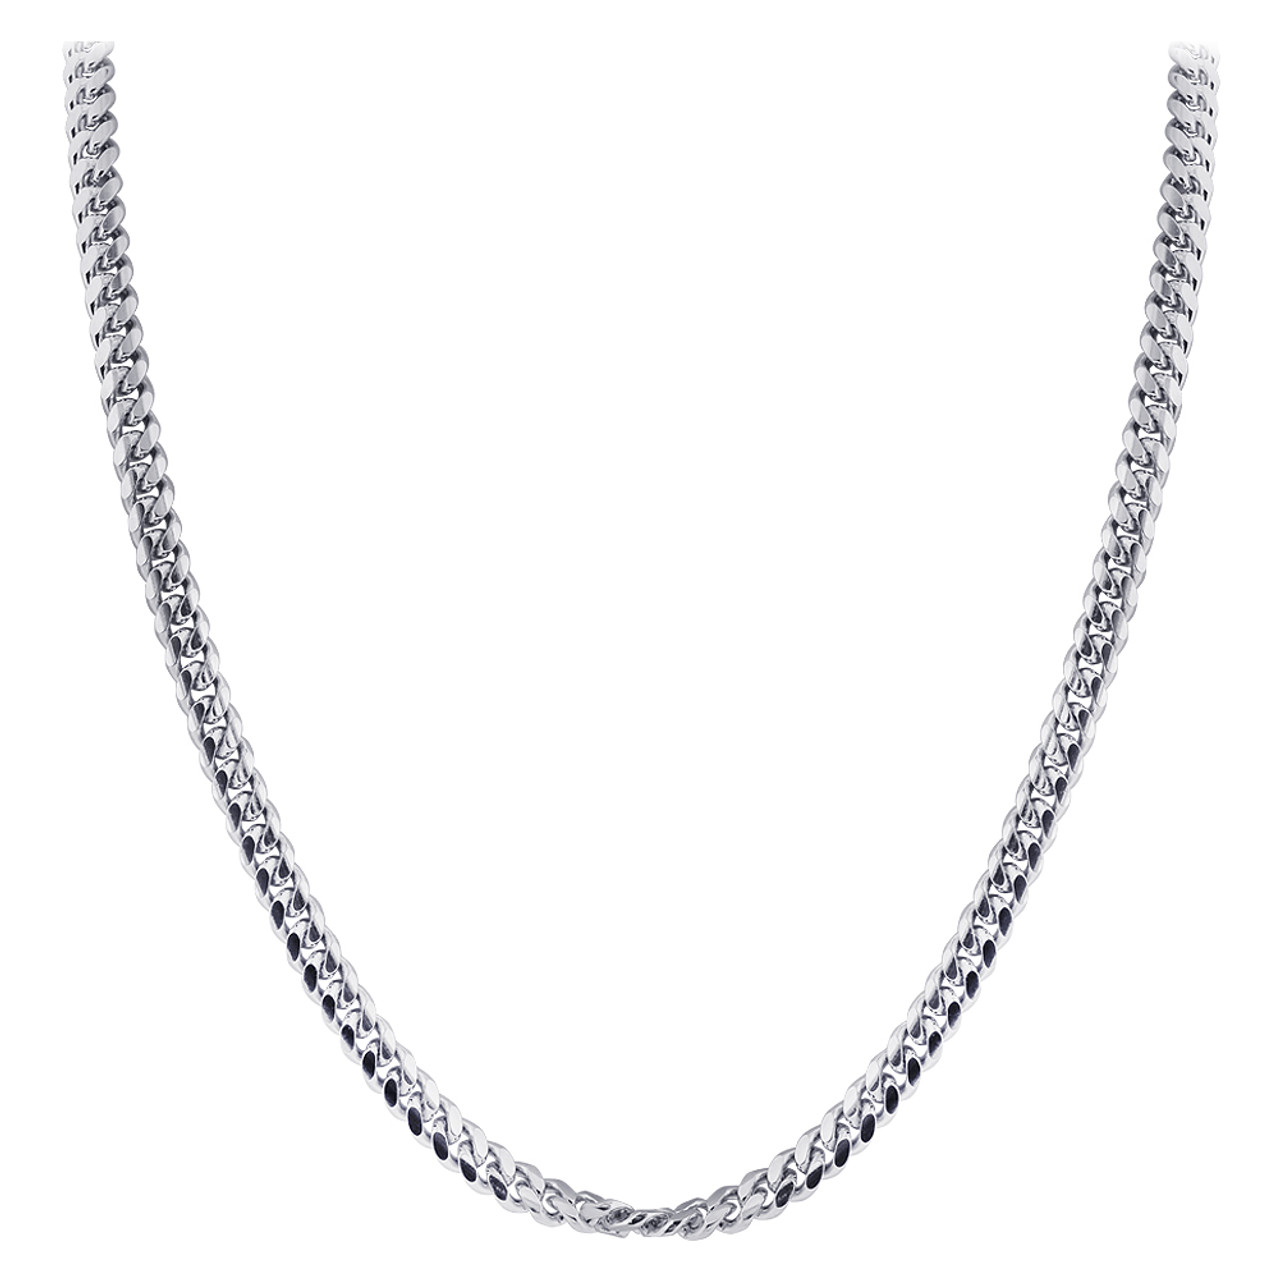 Sterling Silver with Rhodium Plating Chain Necklace